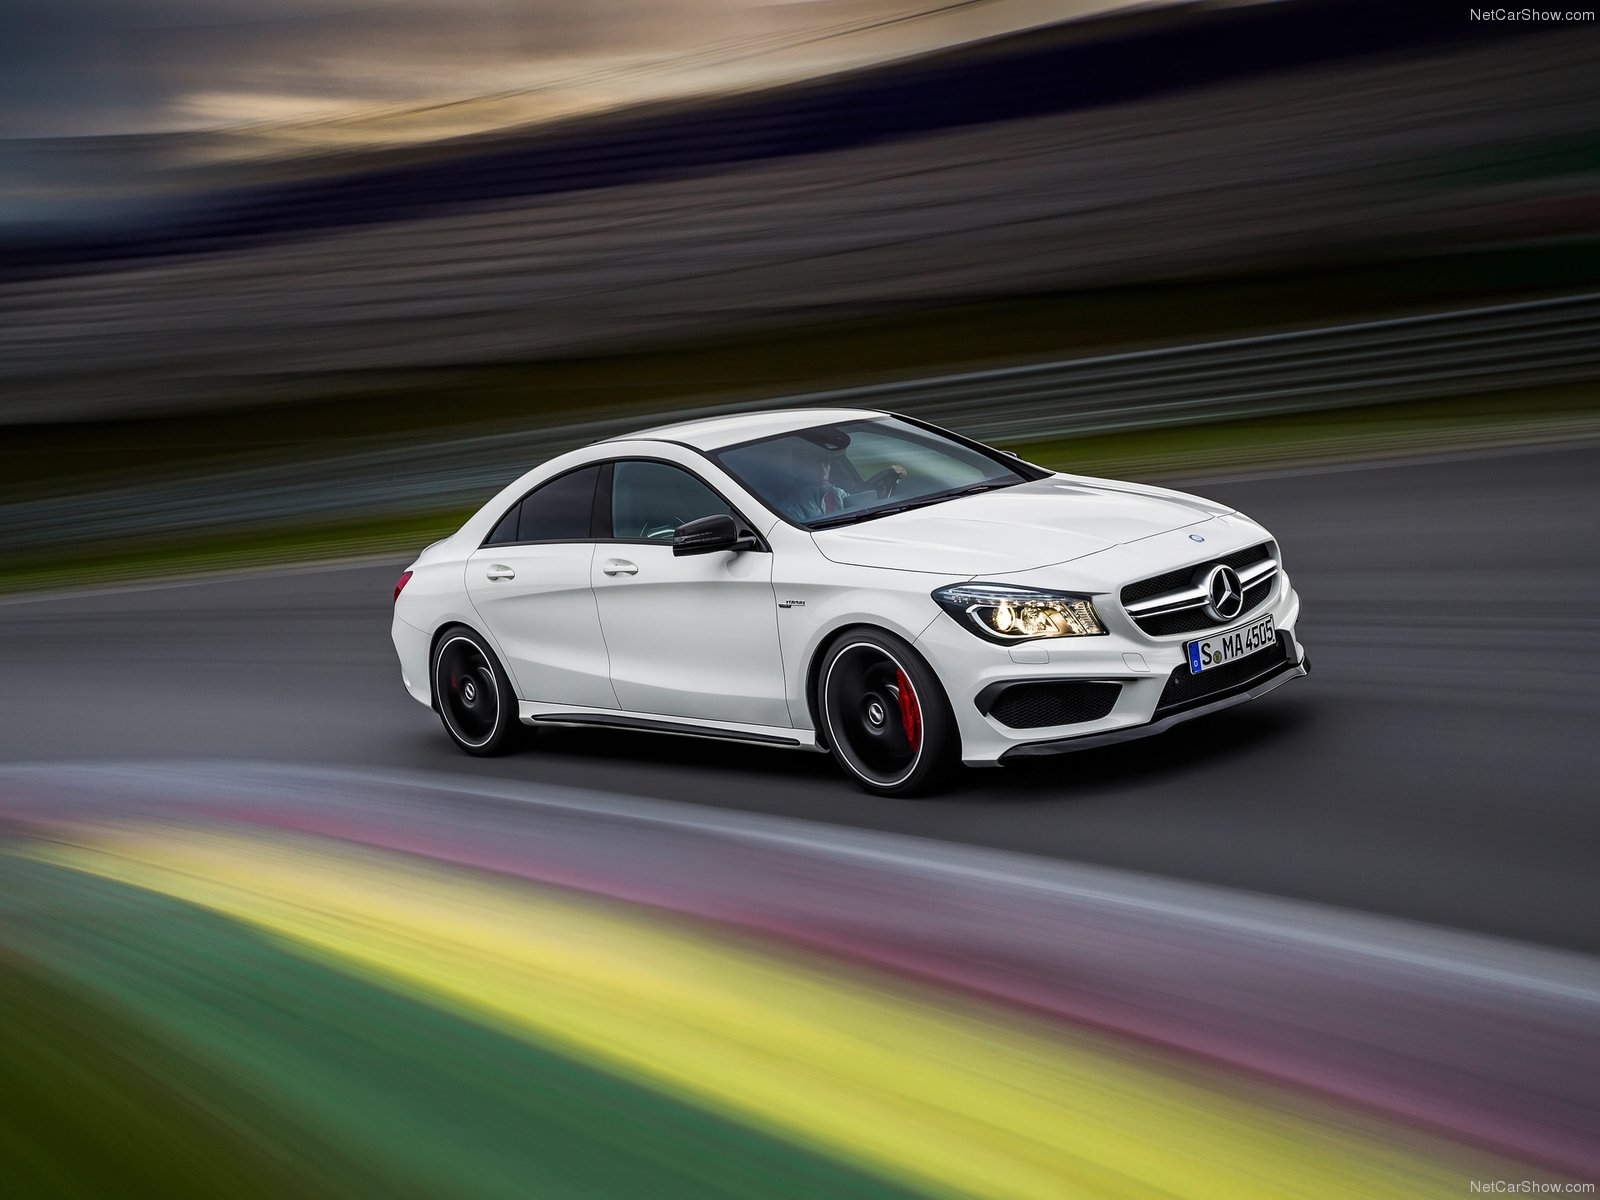 Mercedes-Benz-CLA45_AMG_2014_1600x1200_wallpaper_04